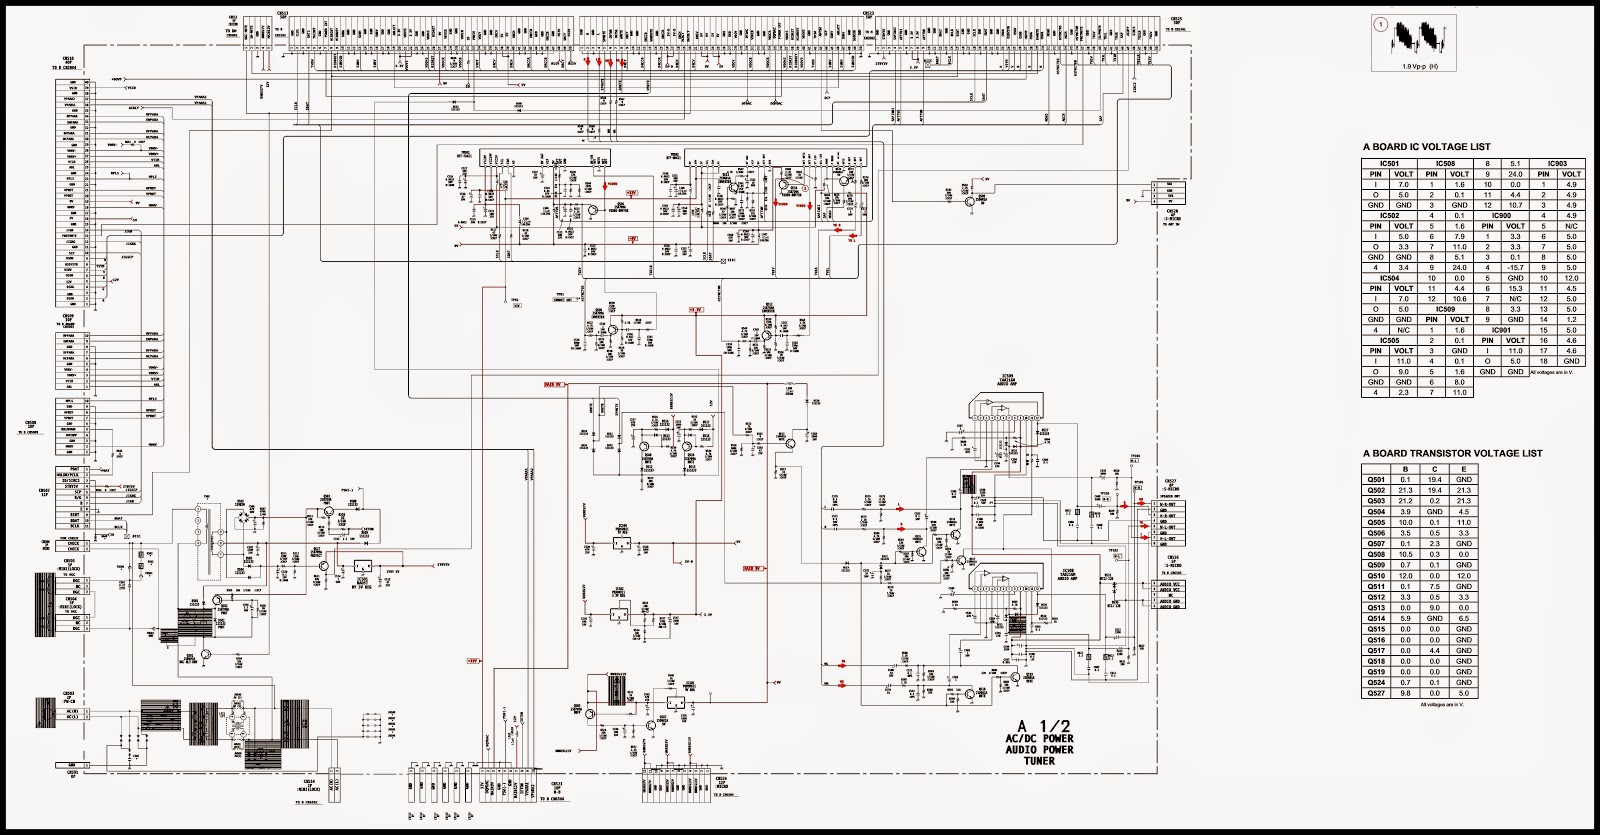 4 Pin Monitor Power Supply Wiring Diagram : 41 Wiring